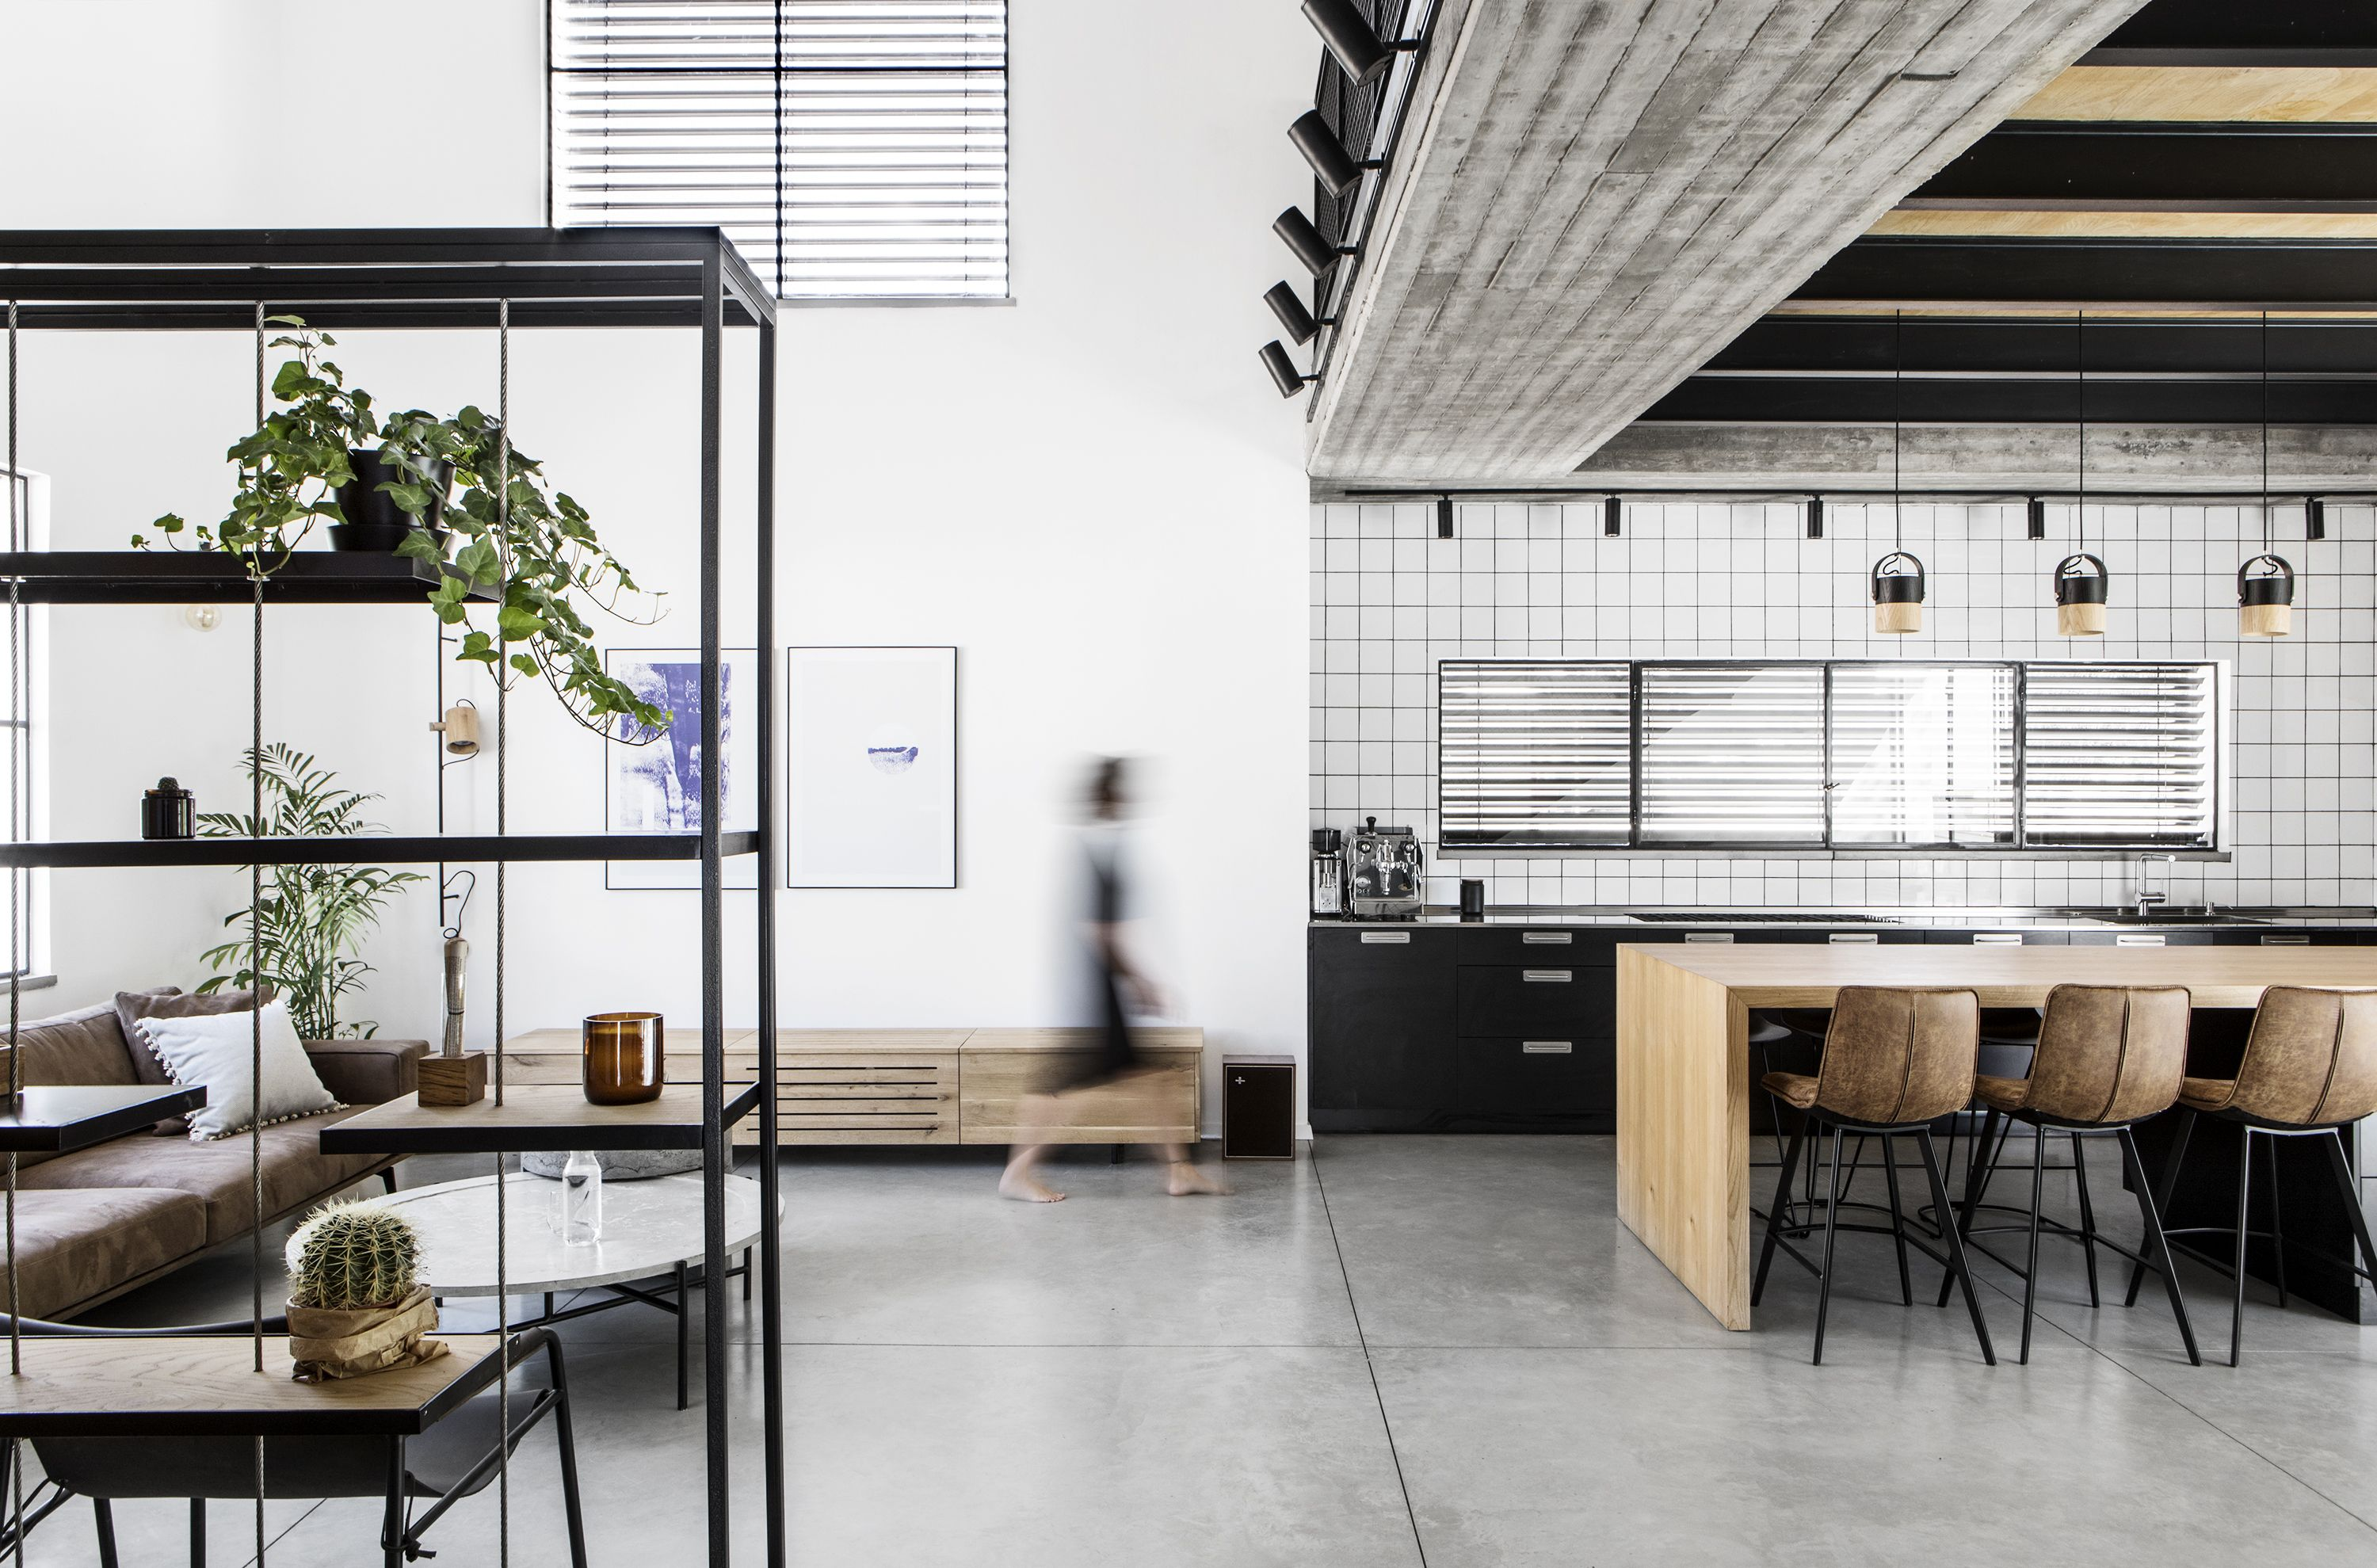 Monochrome minimal industrial home interior design by shir shtaigman photography itay benit